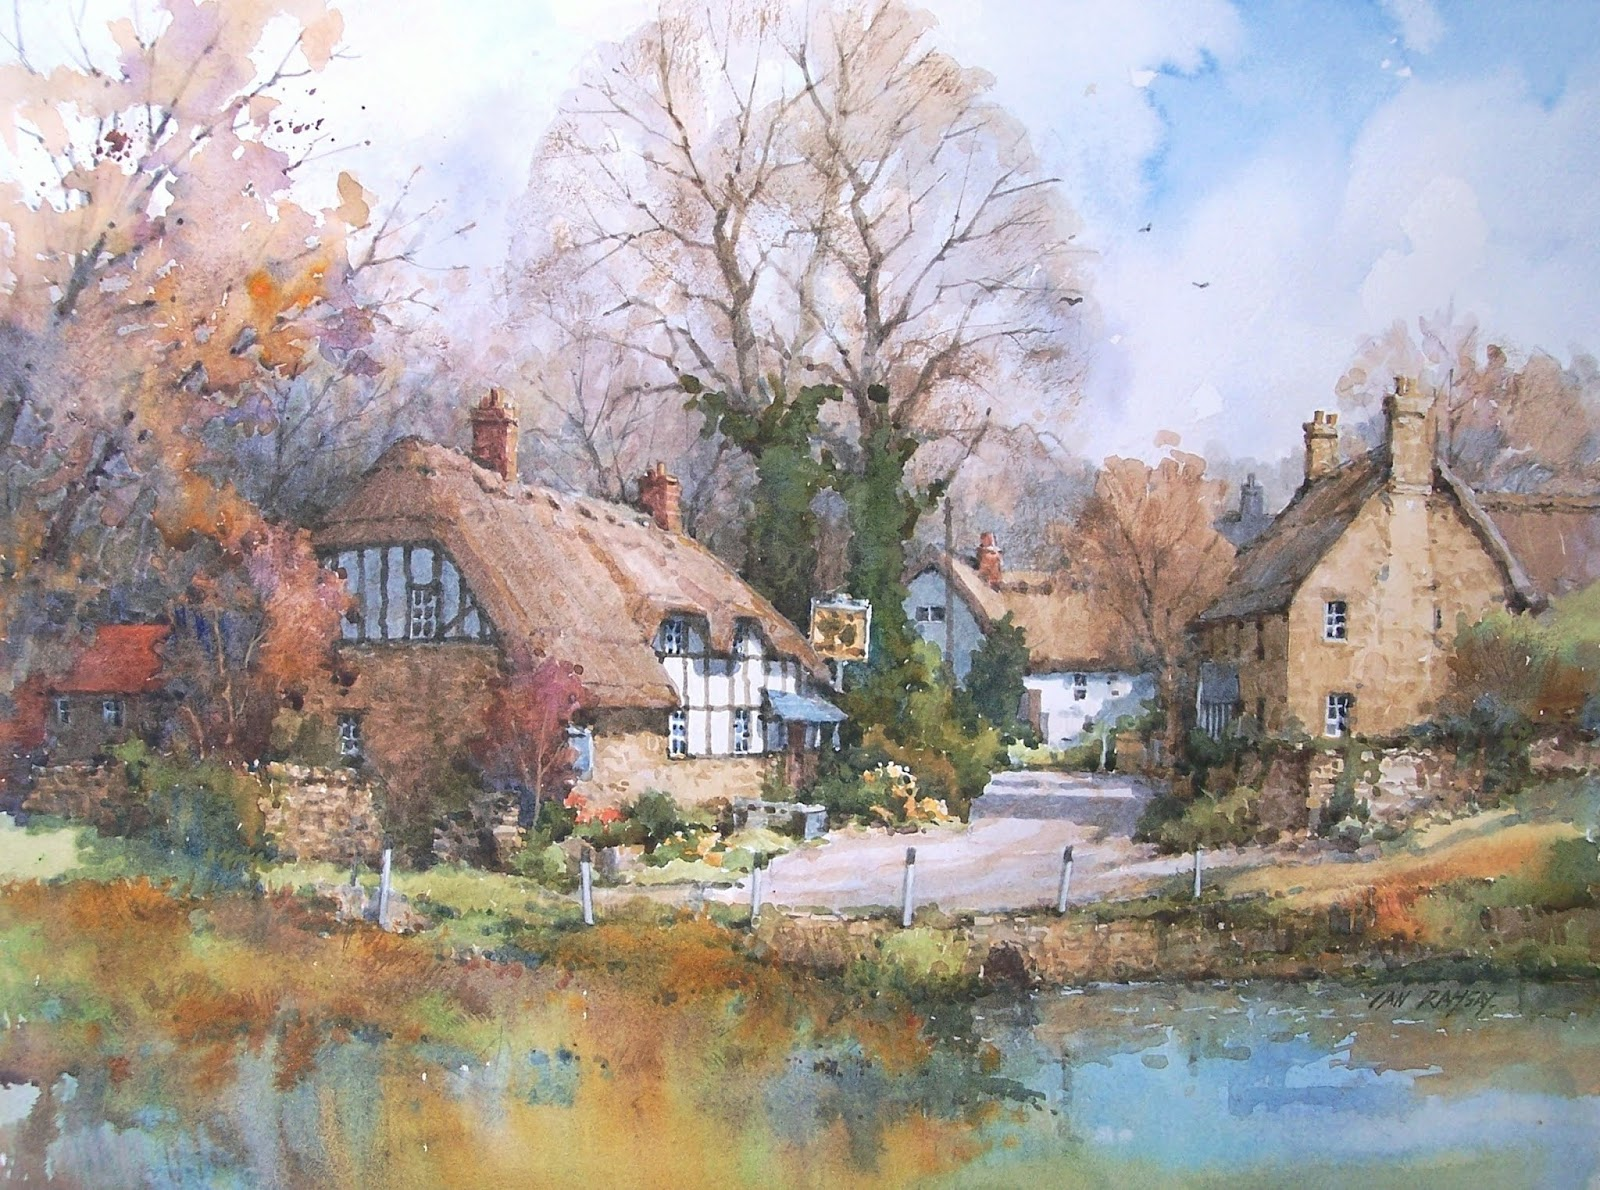 Pub and village pond, Gloucestershire, England